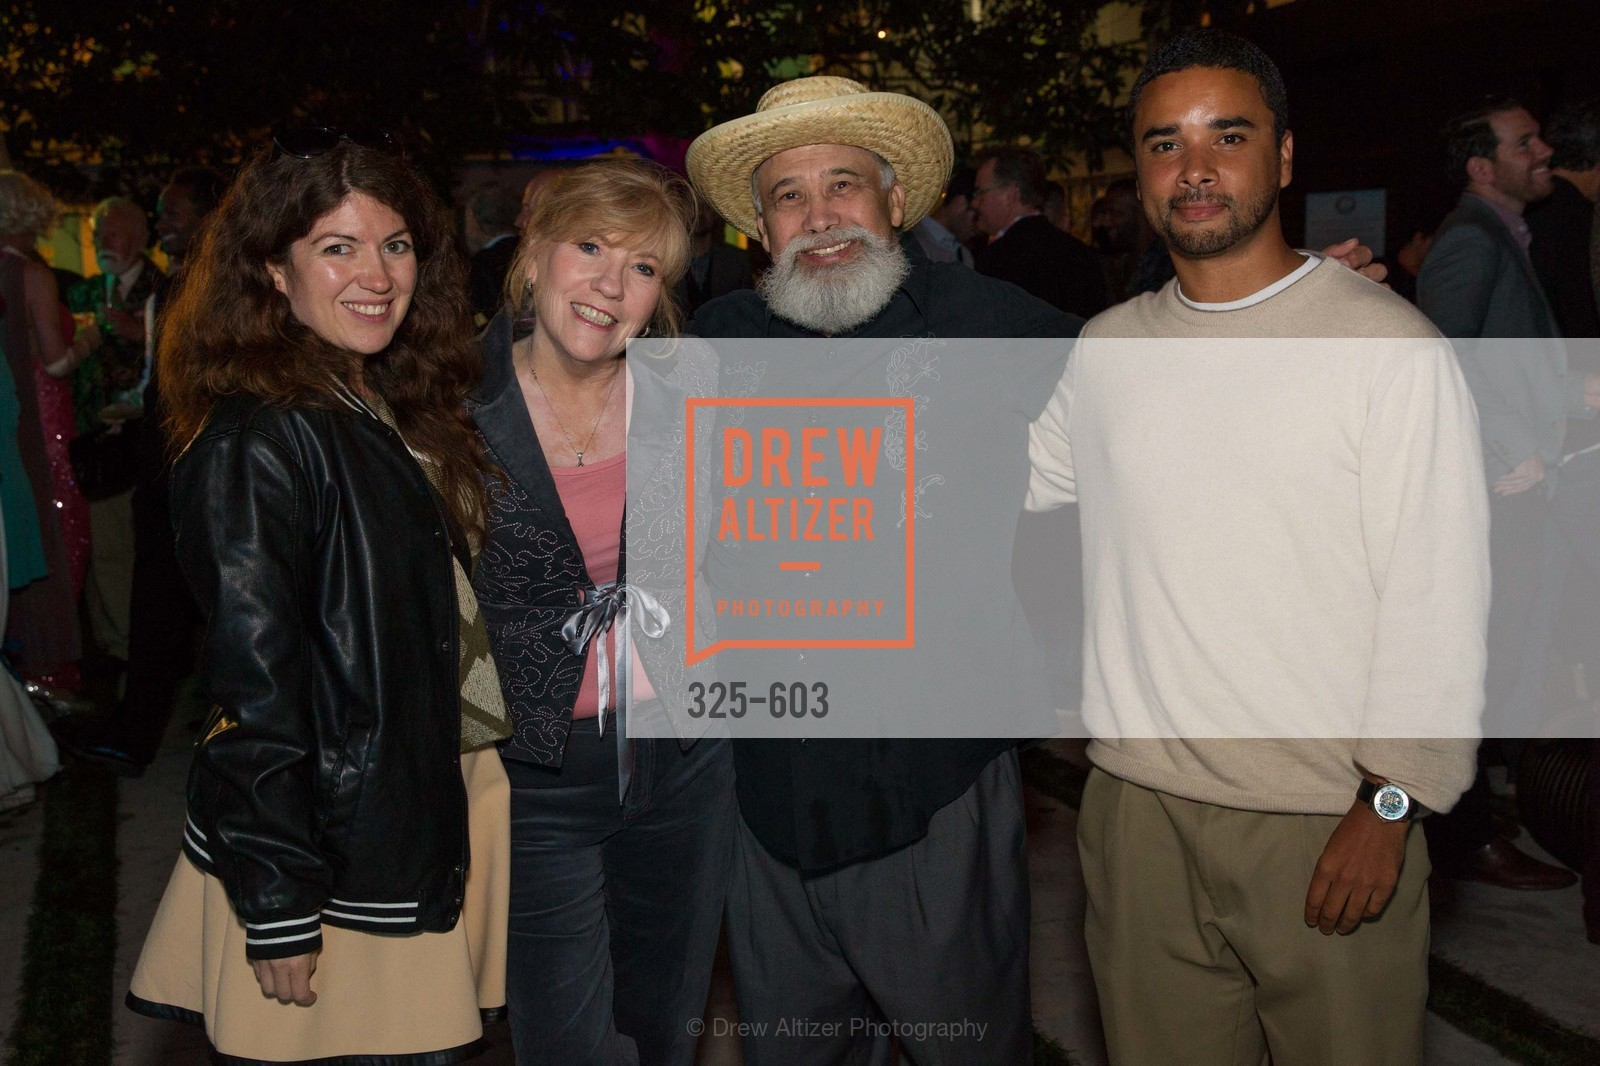 Sunny Angulo, Mary Vasquez, Dave Seiler, Yves-Langston Barthaud, 22nd Annual TNDC CELEBRITY POOL TOSS, US, October 8th, 2014,Drew Altizer, Drew Altizer Photography, full-service agency, private events, San Francisco photographer, photographer california